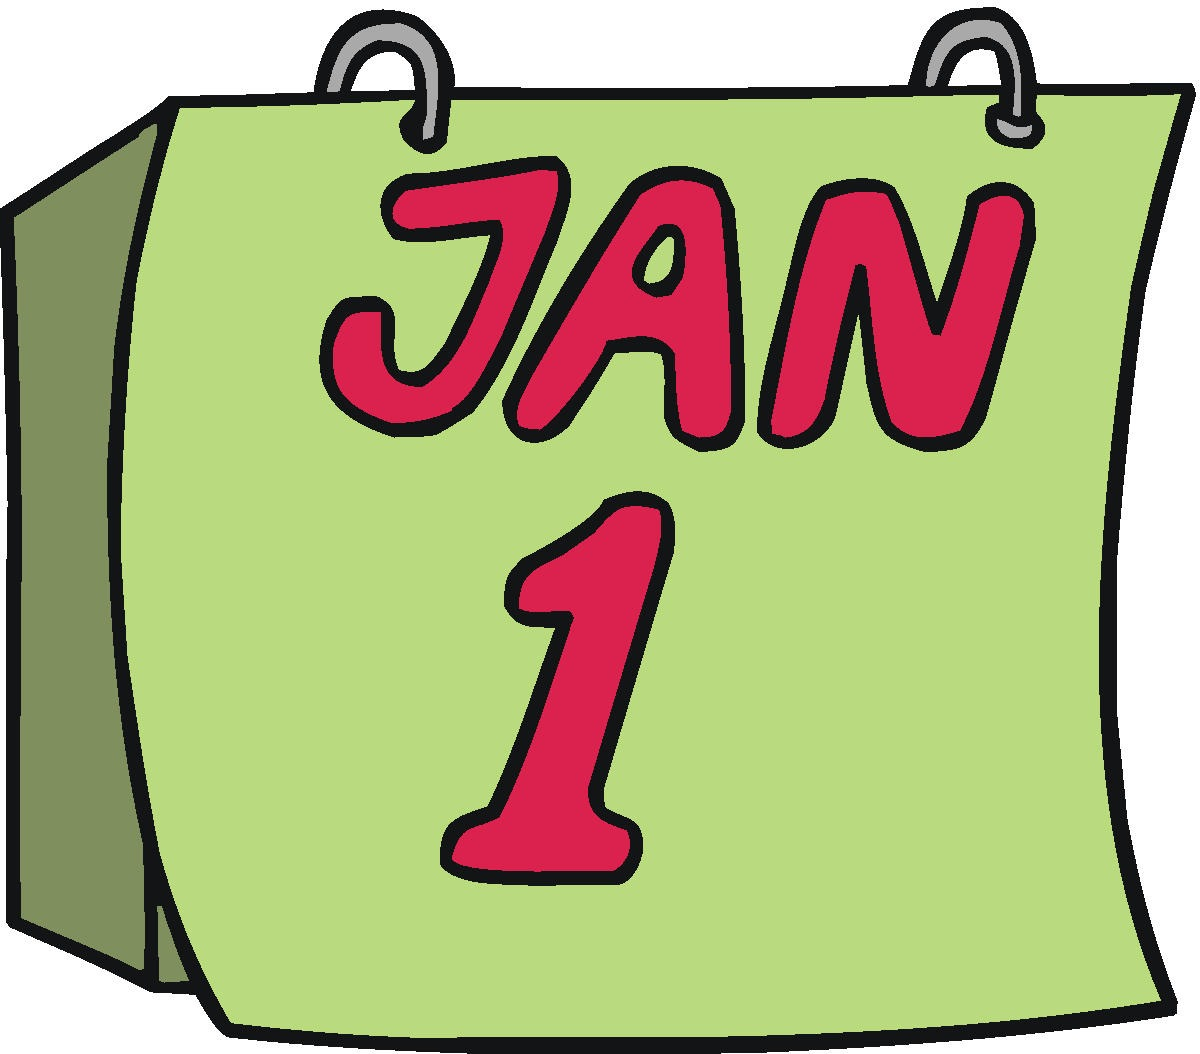 Clip Art Calendar January : January cartoon clipart suggest